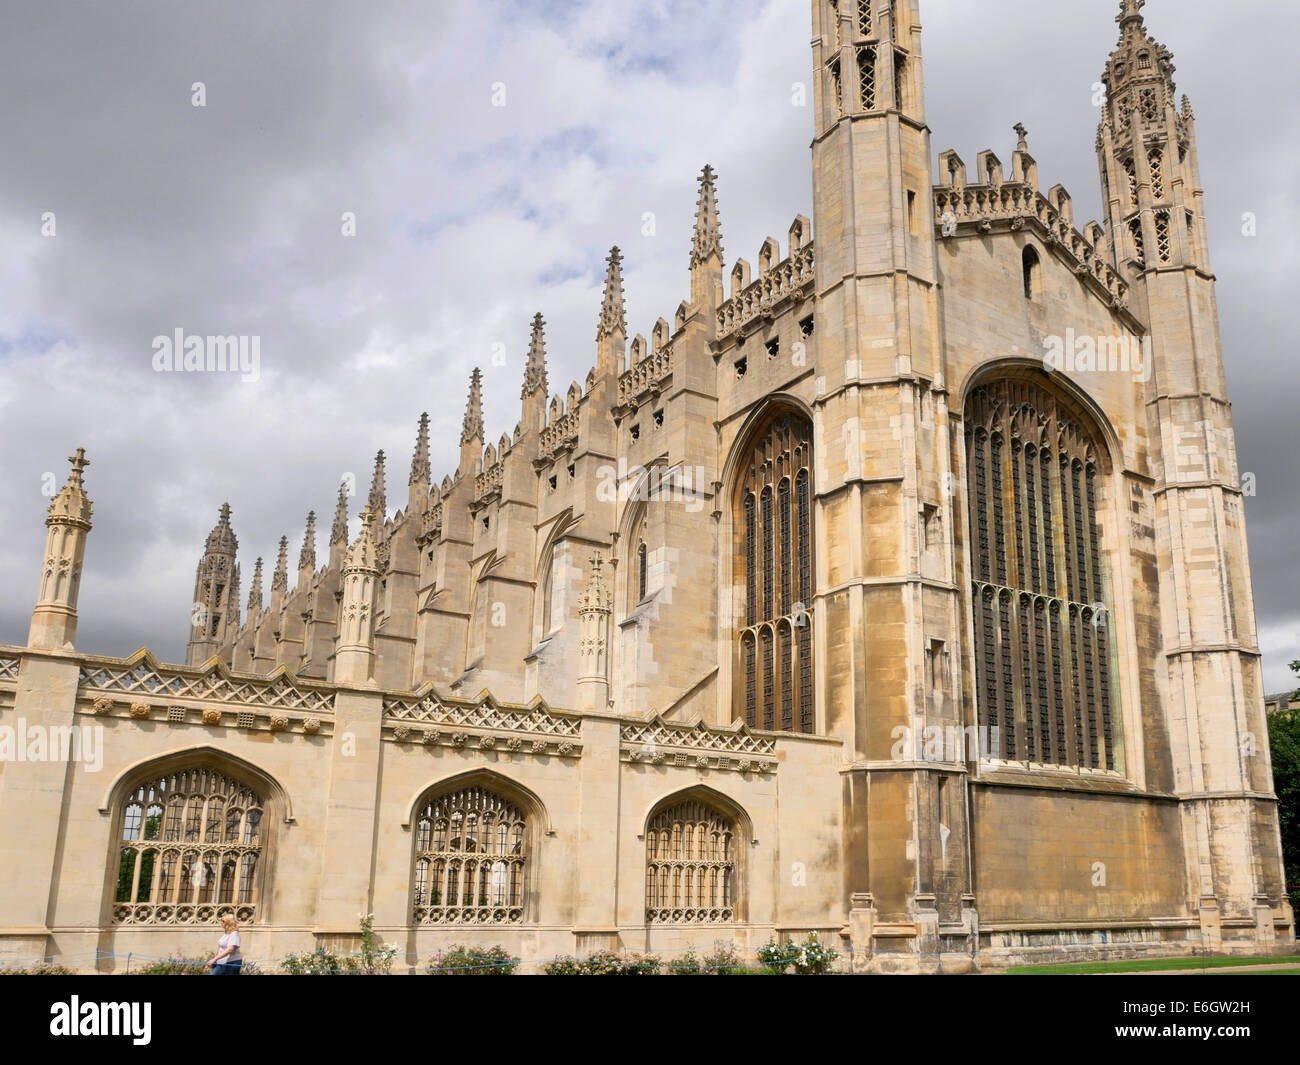 Kings College and Kings College Chapel, Cambridge England - Stock Image